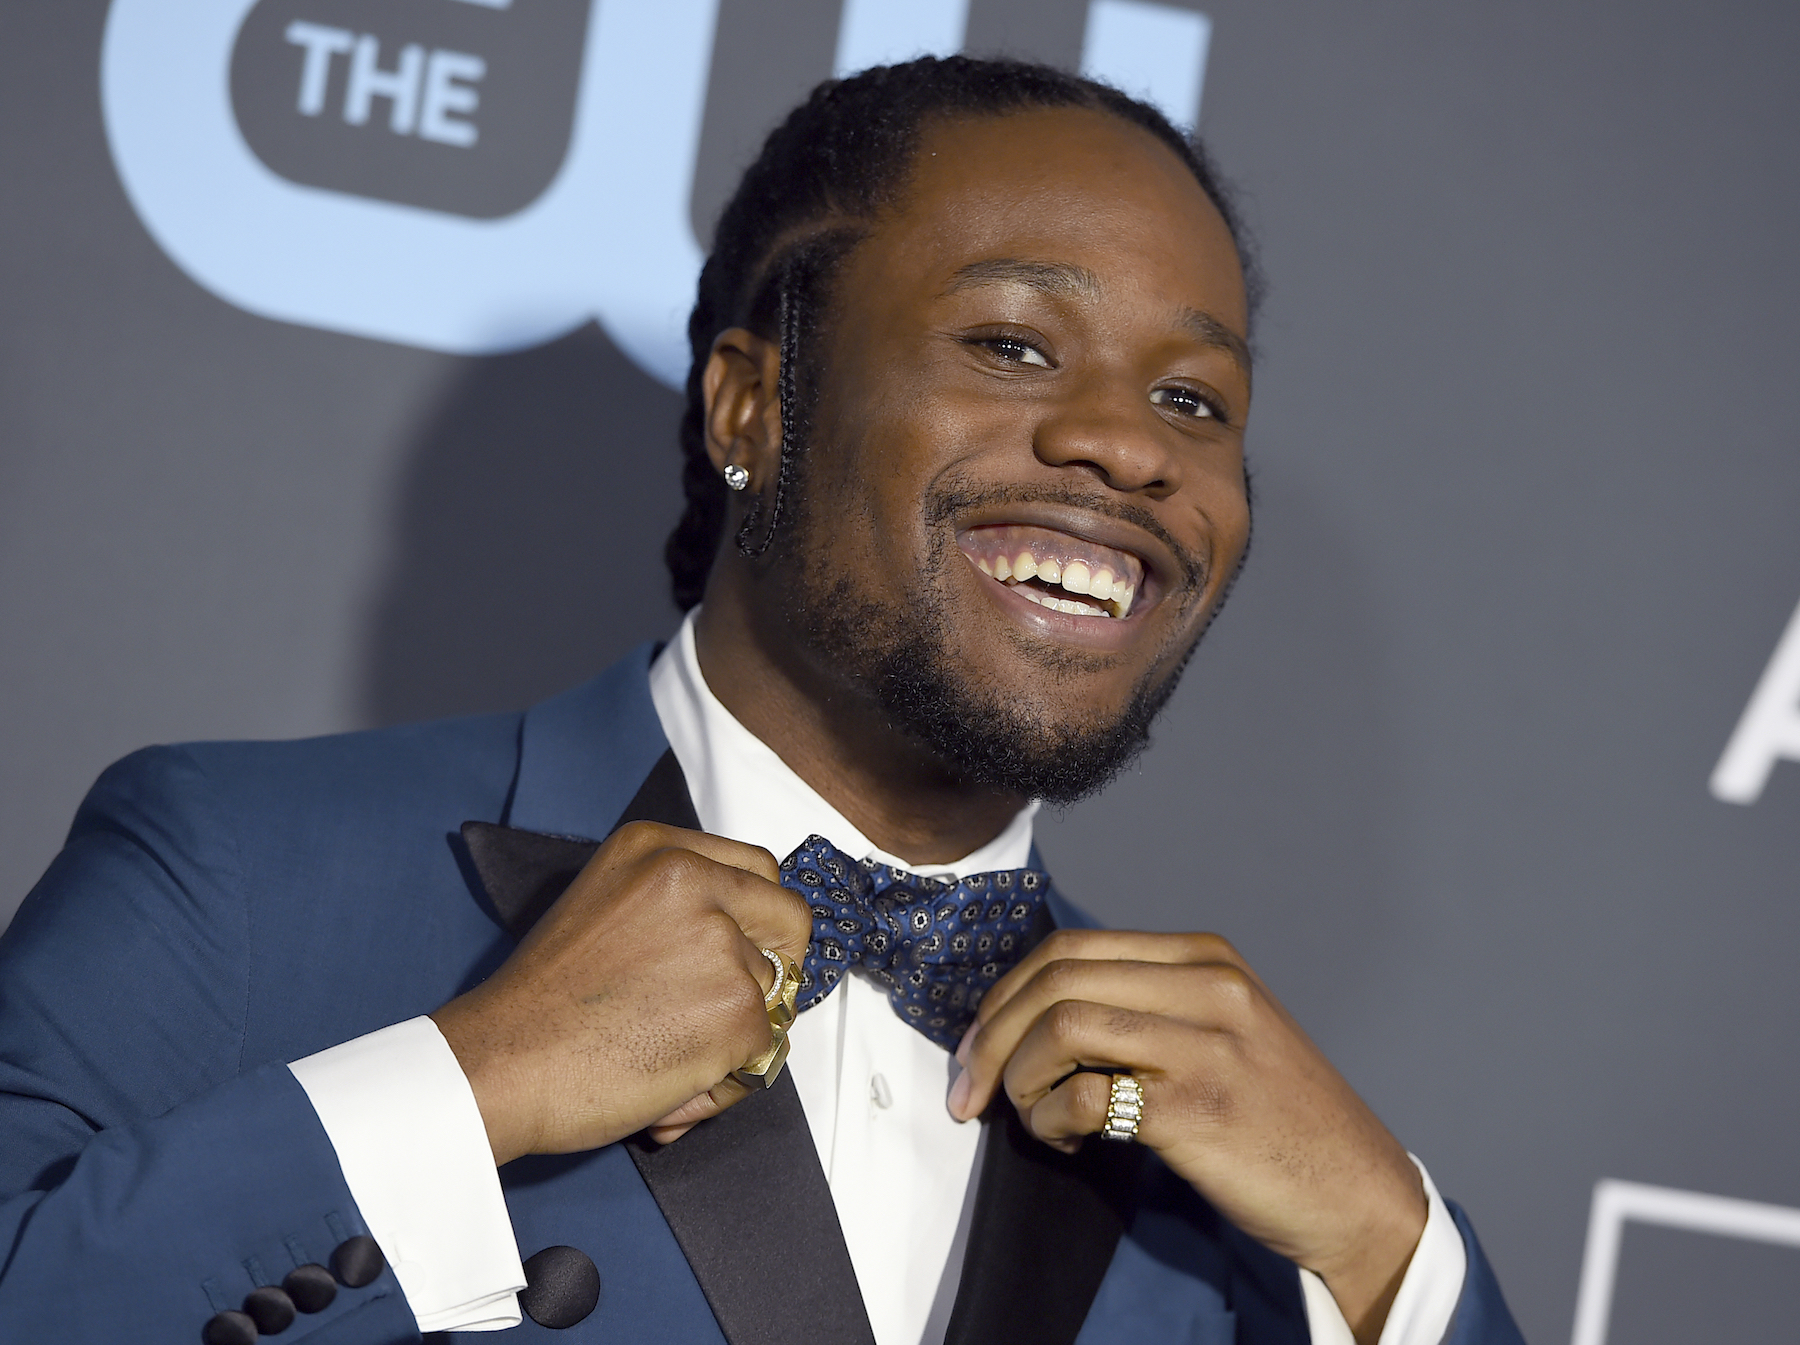 "<div class=""meta image-caption""><div class=""origin-logo origin-image ap""><span>AP</span></div><span class=""caption-text"">Shameik Moore arrives at the 24th annual Critics' Choice Awards on Sunday, Jan. 13, 2019, at the Barker Hangar in Santa Monica, Calif. (Jordan Strauss/Invision/AP)</span></div>"